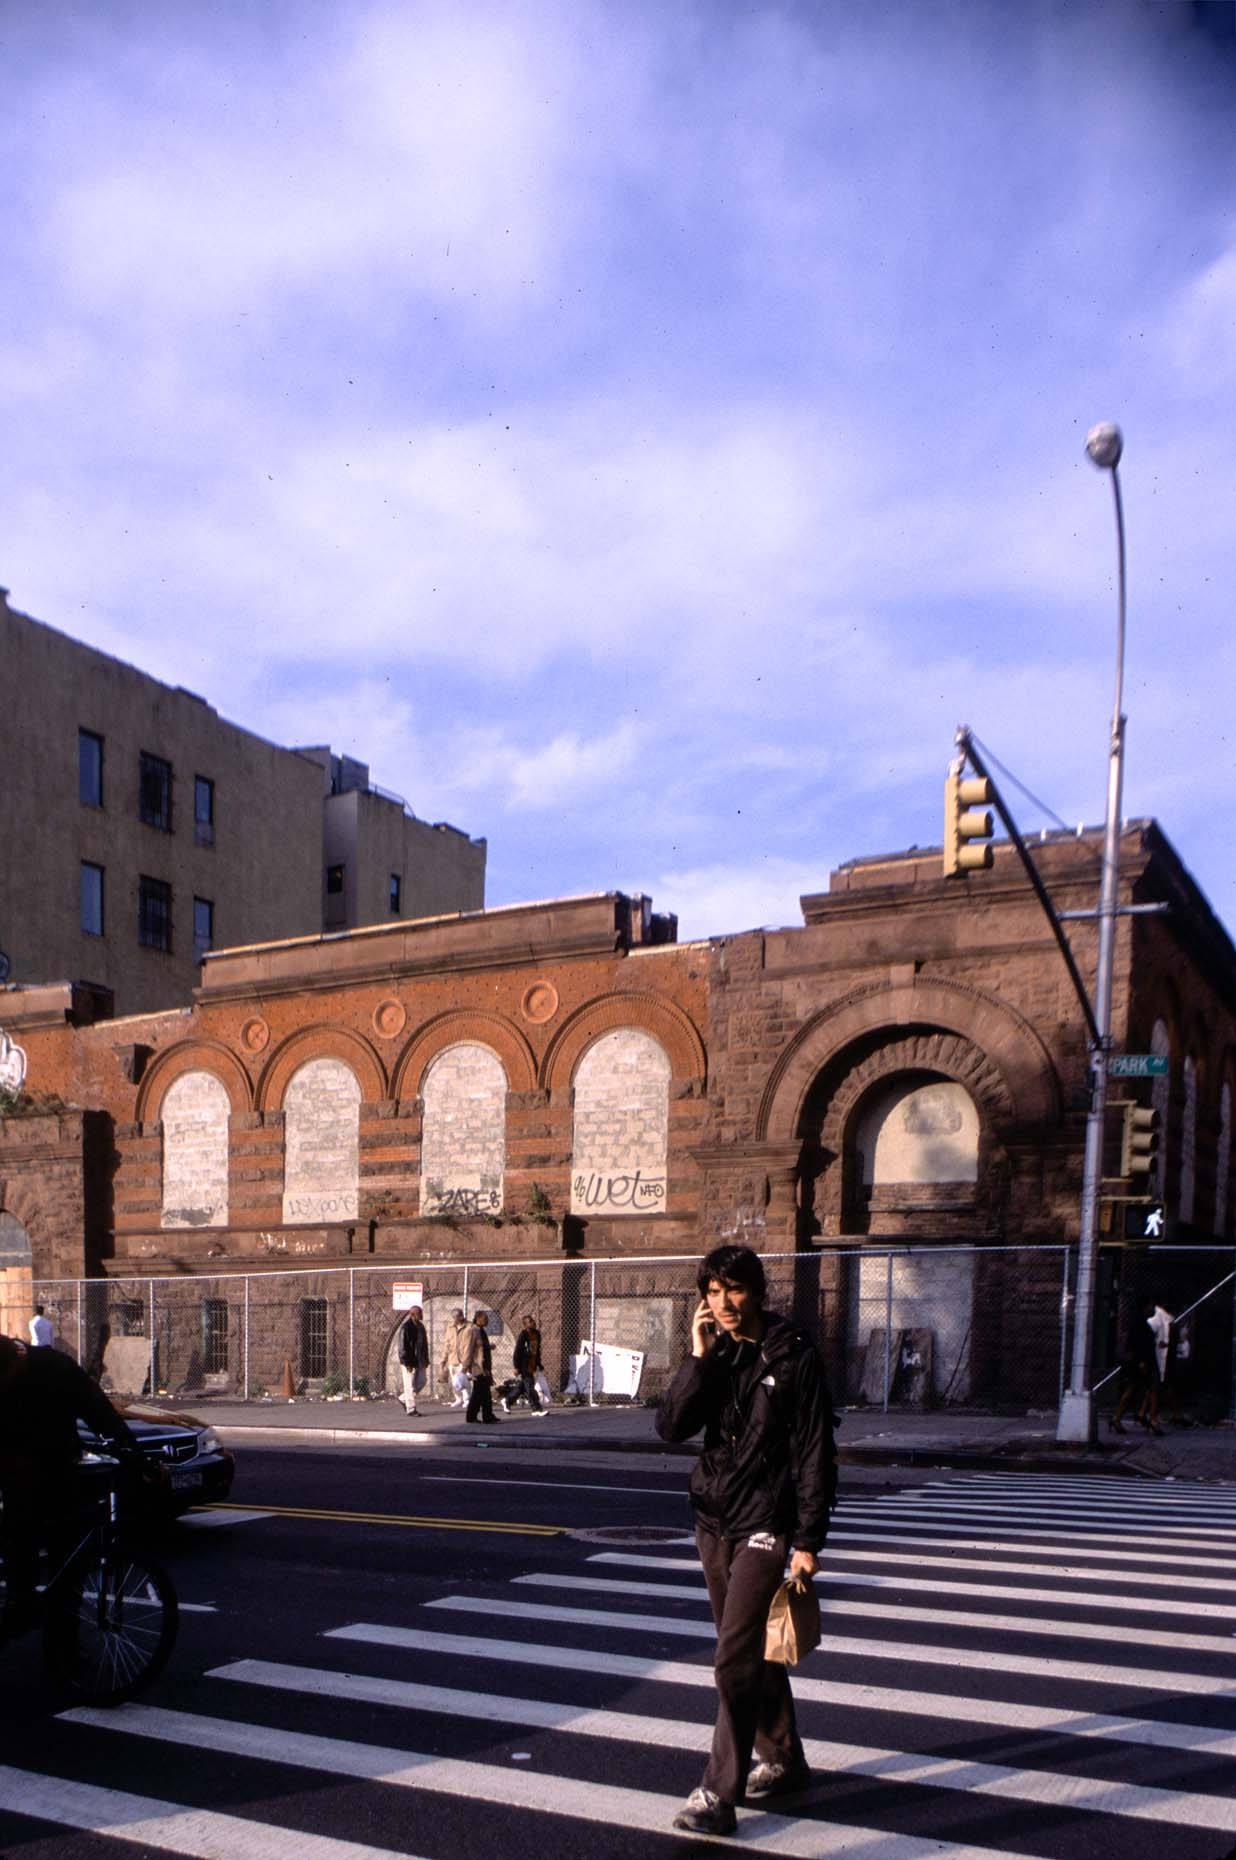 16_109-Former Corn Exchange Bank, E-DUP. 125th St. at Park Ave., Harlem, 2011_.jpg